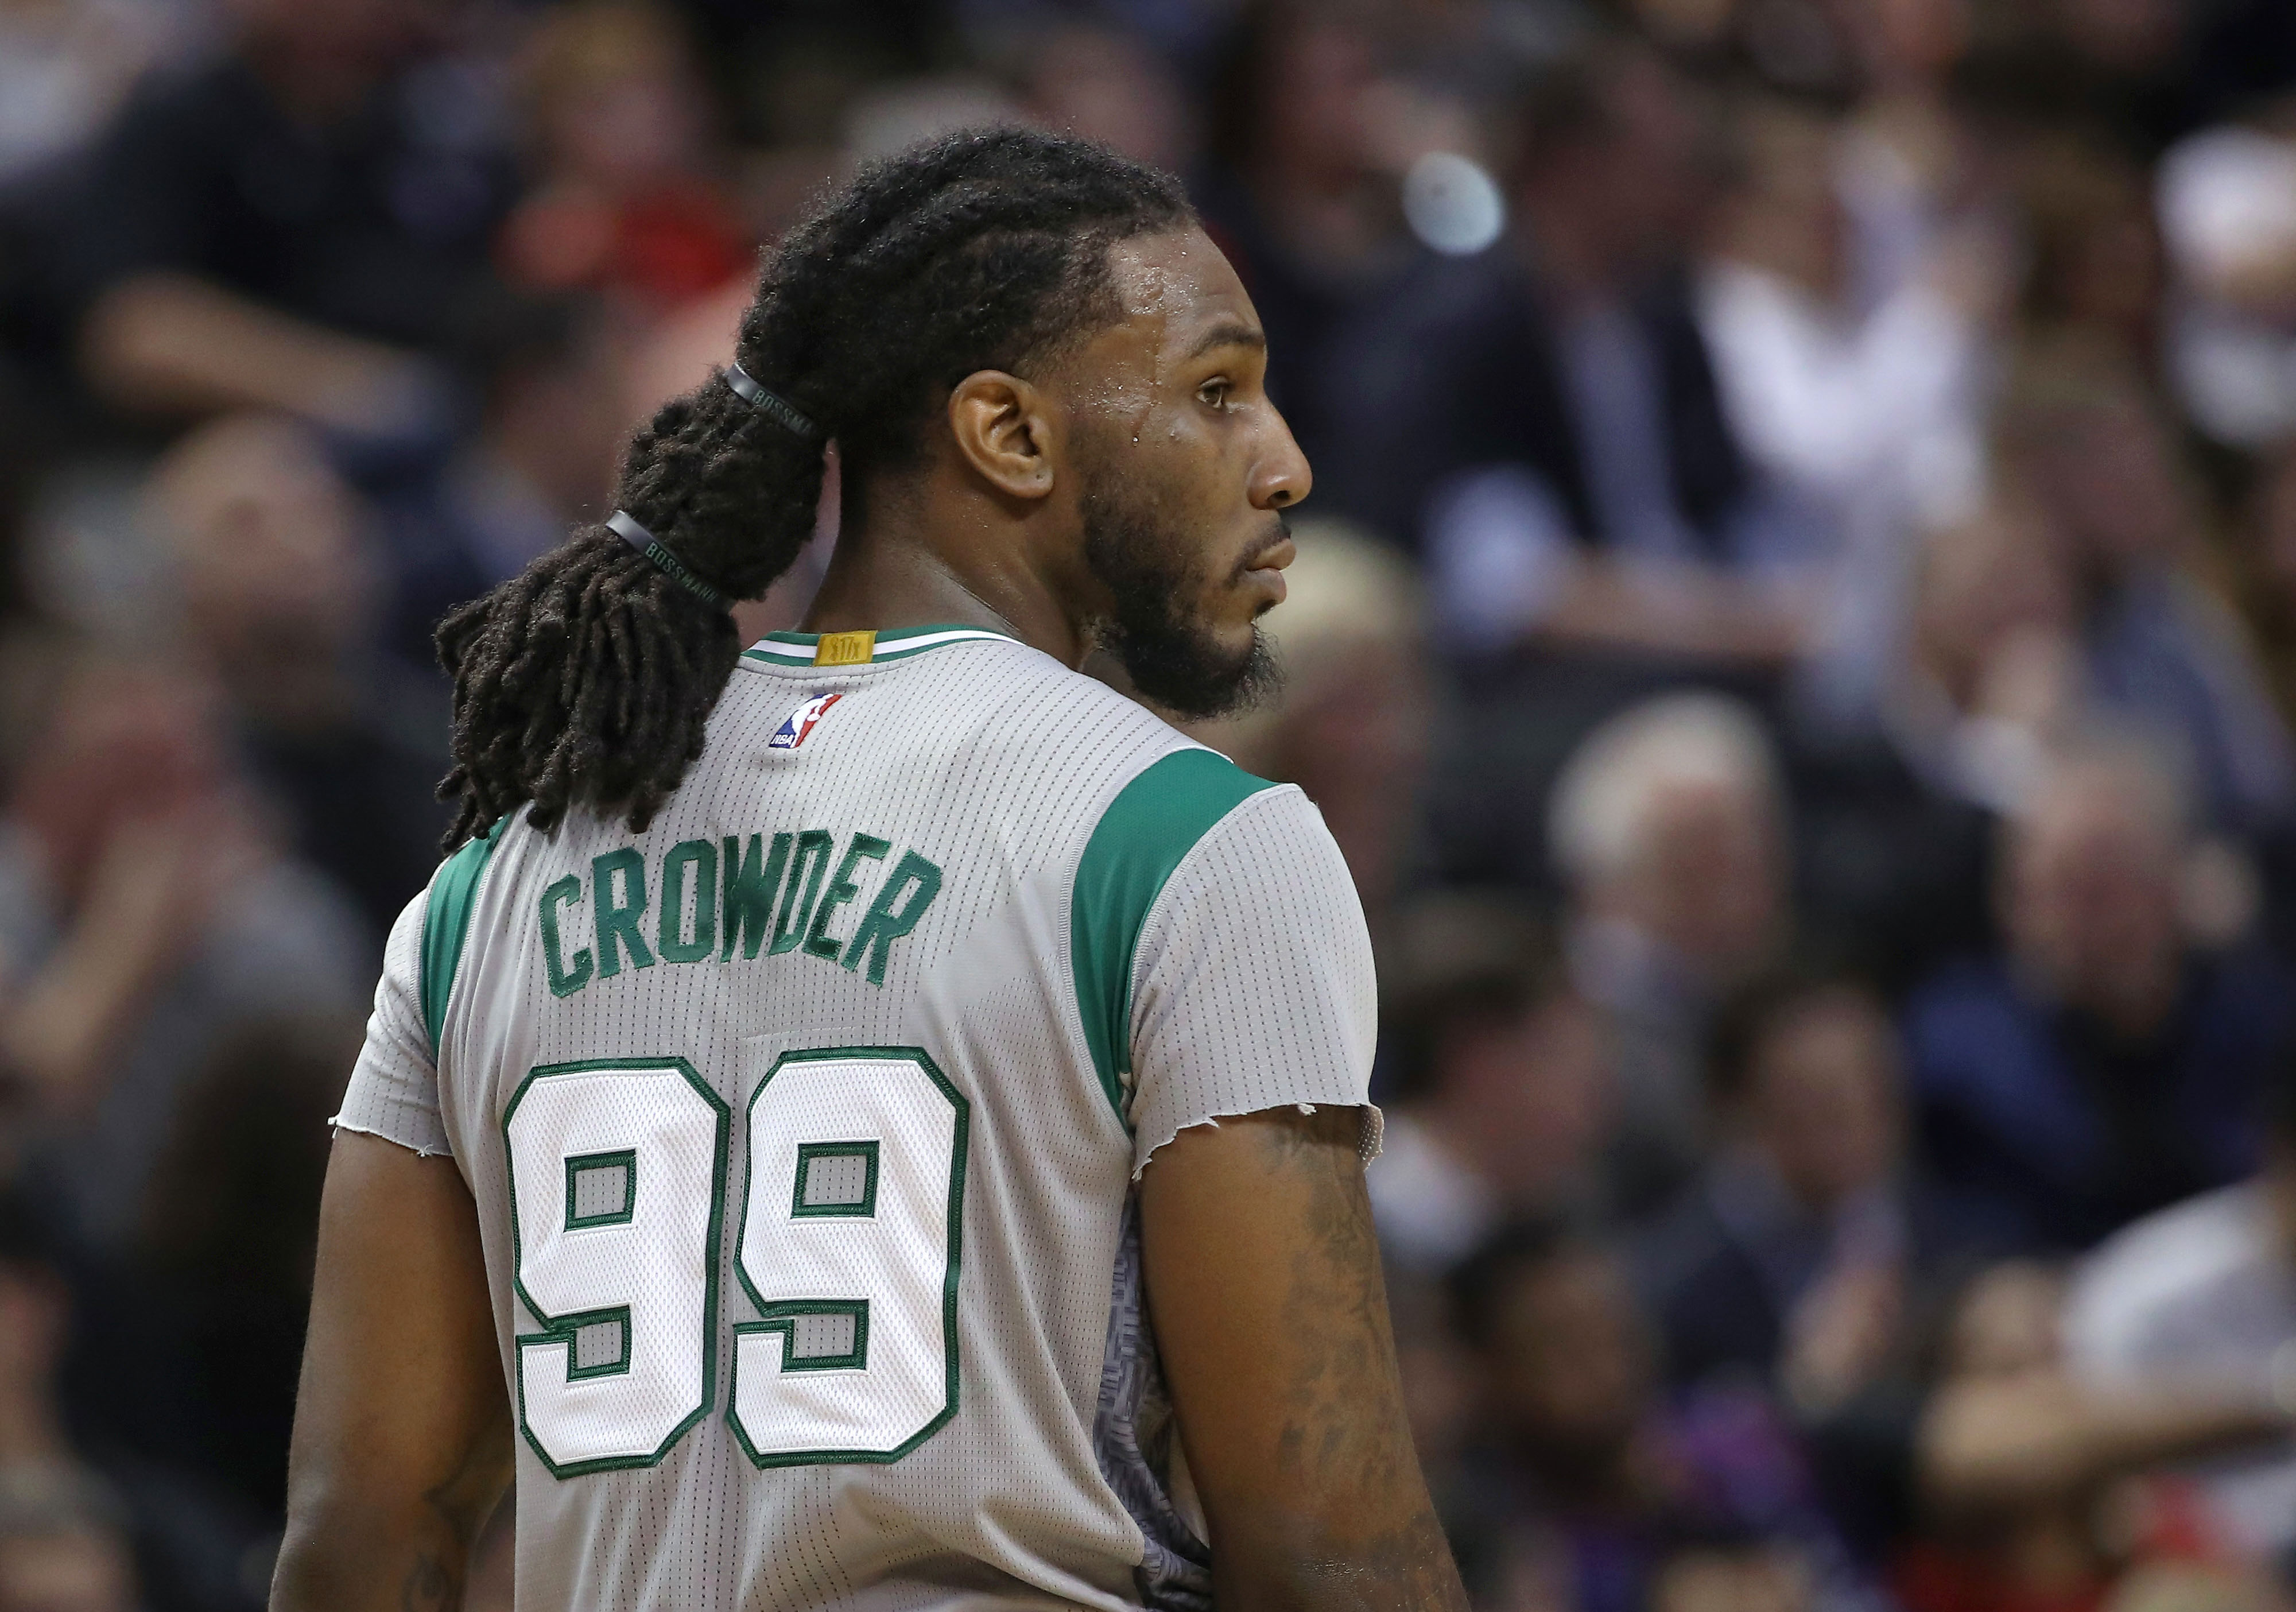 Jan 10, 2017; Toronto, Ontario, CAN; Boston Celtics forward Jae Crowder (99) during their game against the Toronto Raptors at Air Canada Centre. The Raptors beat the Celtics 114-106. Mandatory Credit: Tom Szczerbowski-USA TODAY Sports